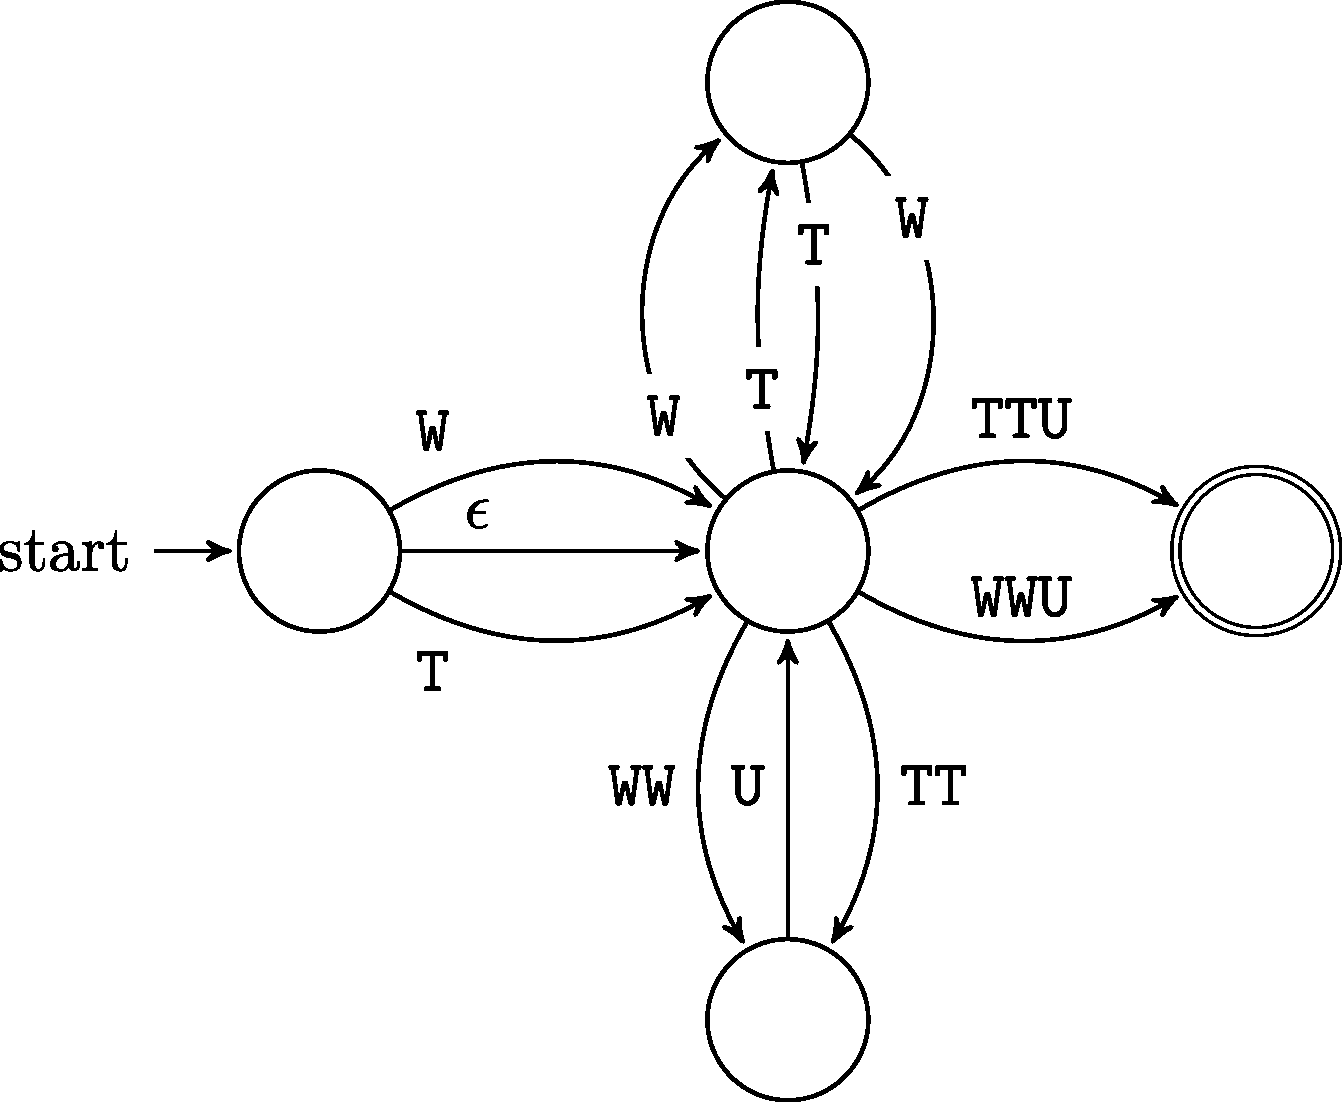 More Ties Than We Thought Peerj Craftsman Pressure Washer Wiring Diagram Classification Of The Tie Knot Language